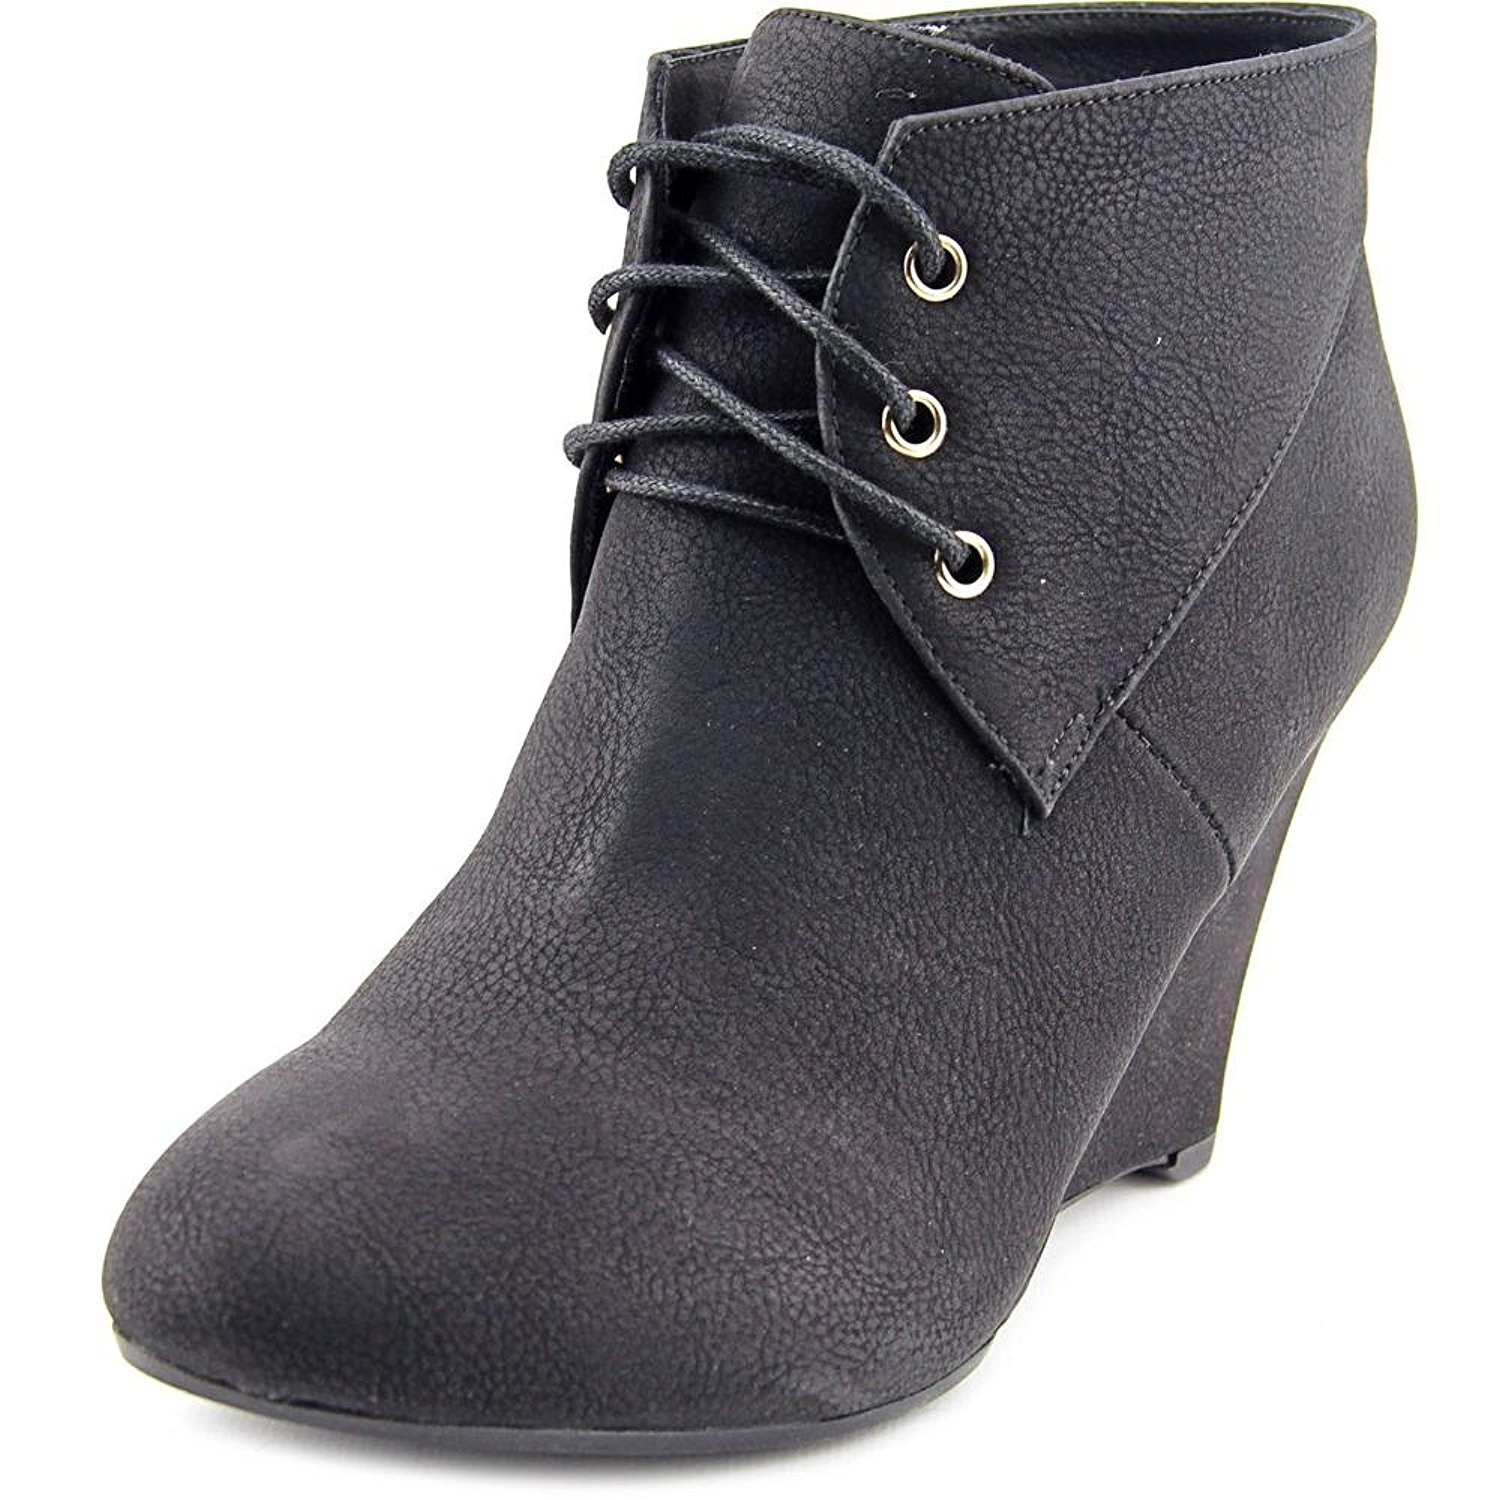 Sodi Womens Noa Closed Toe Ankle Fashion Boots